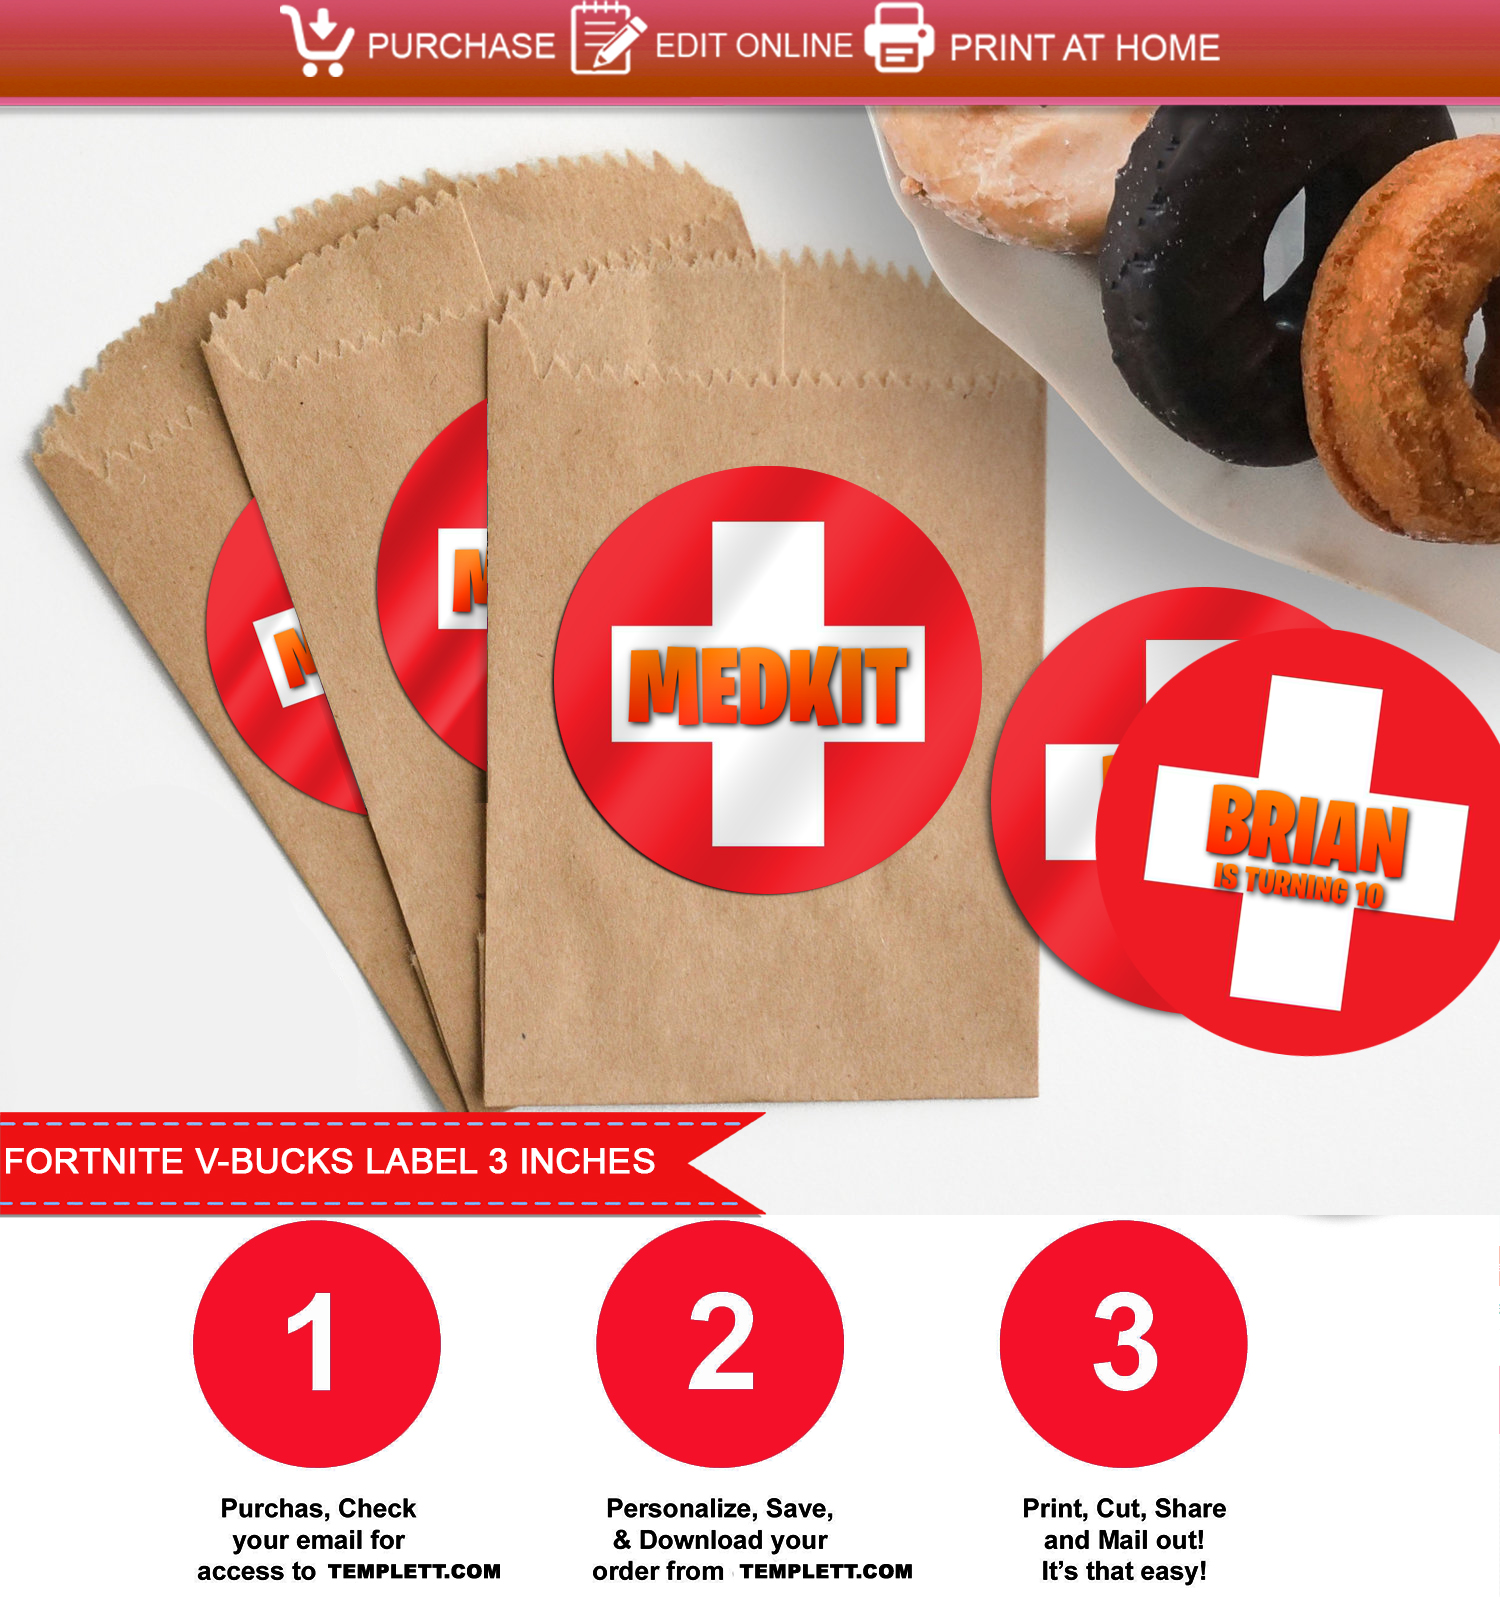 Fortnite Medkit Label Template 3 Inches Print Party